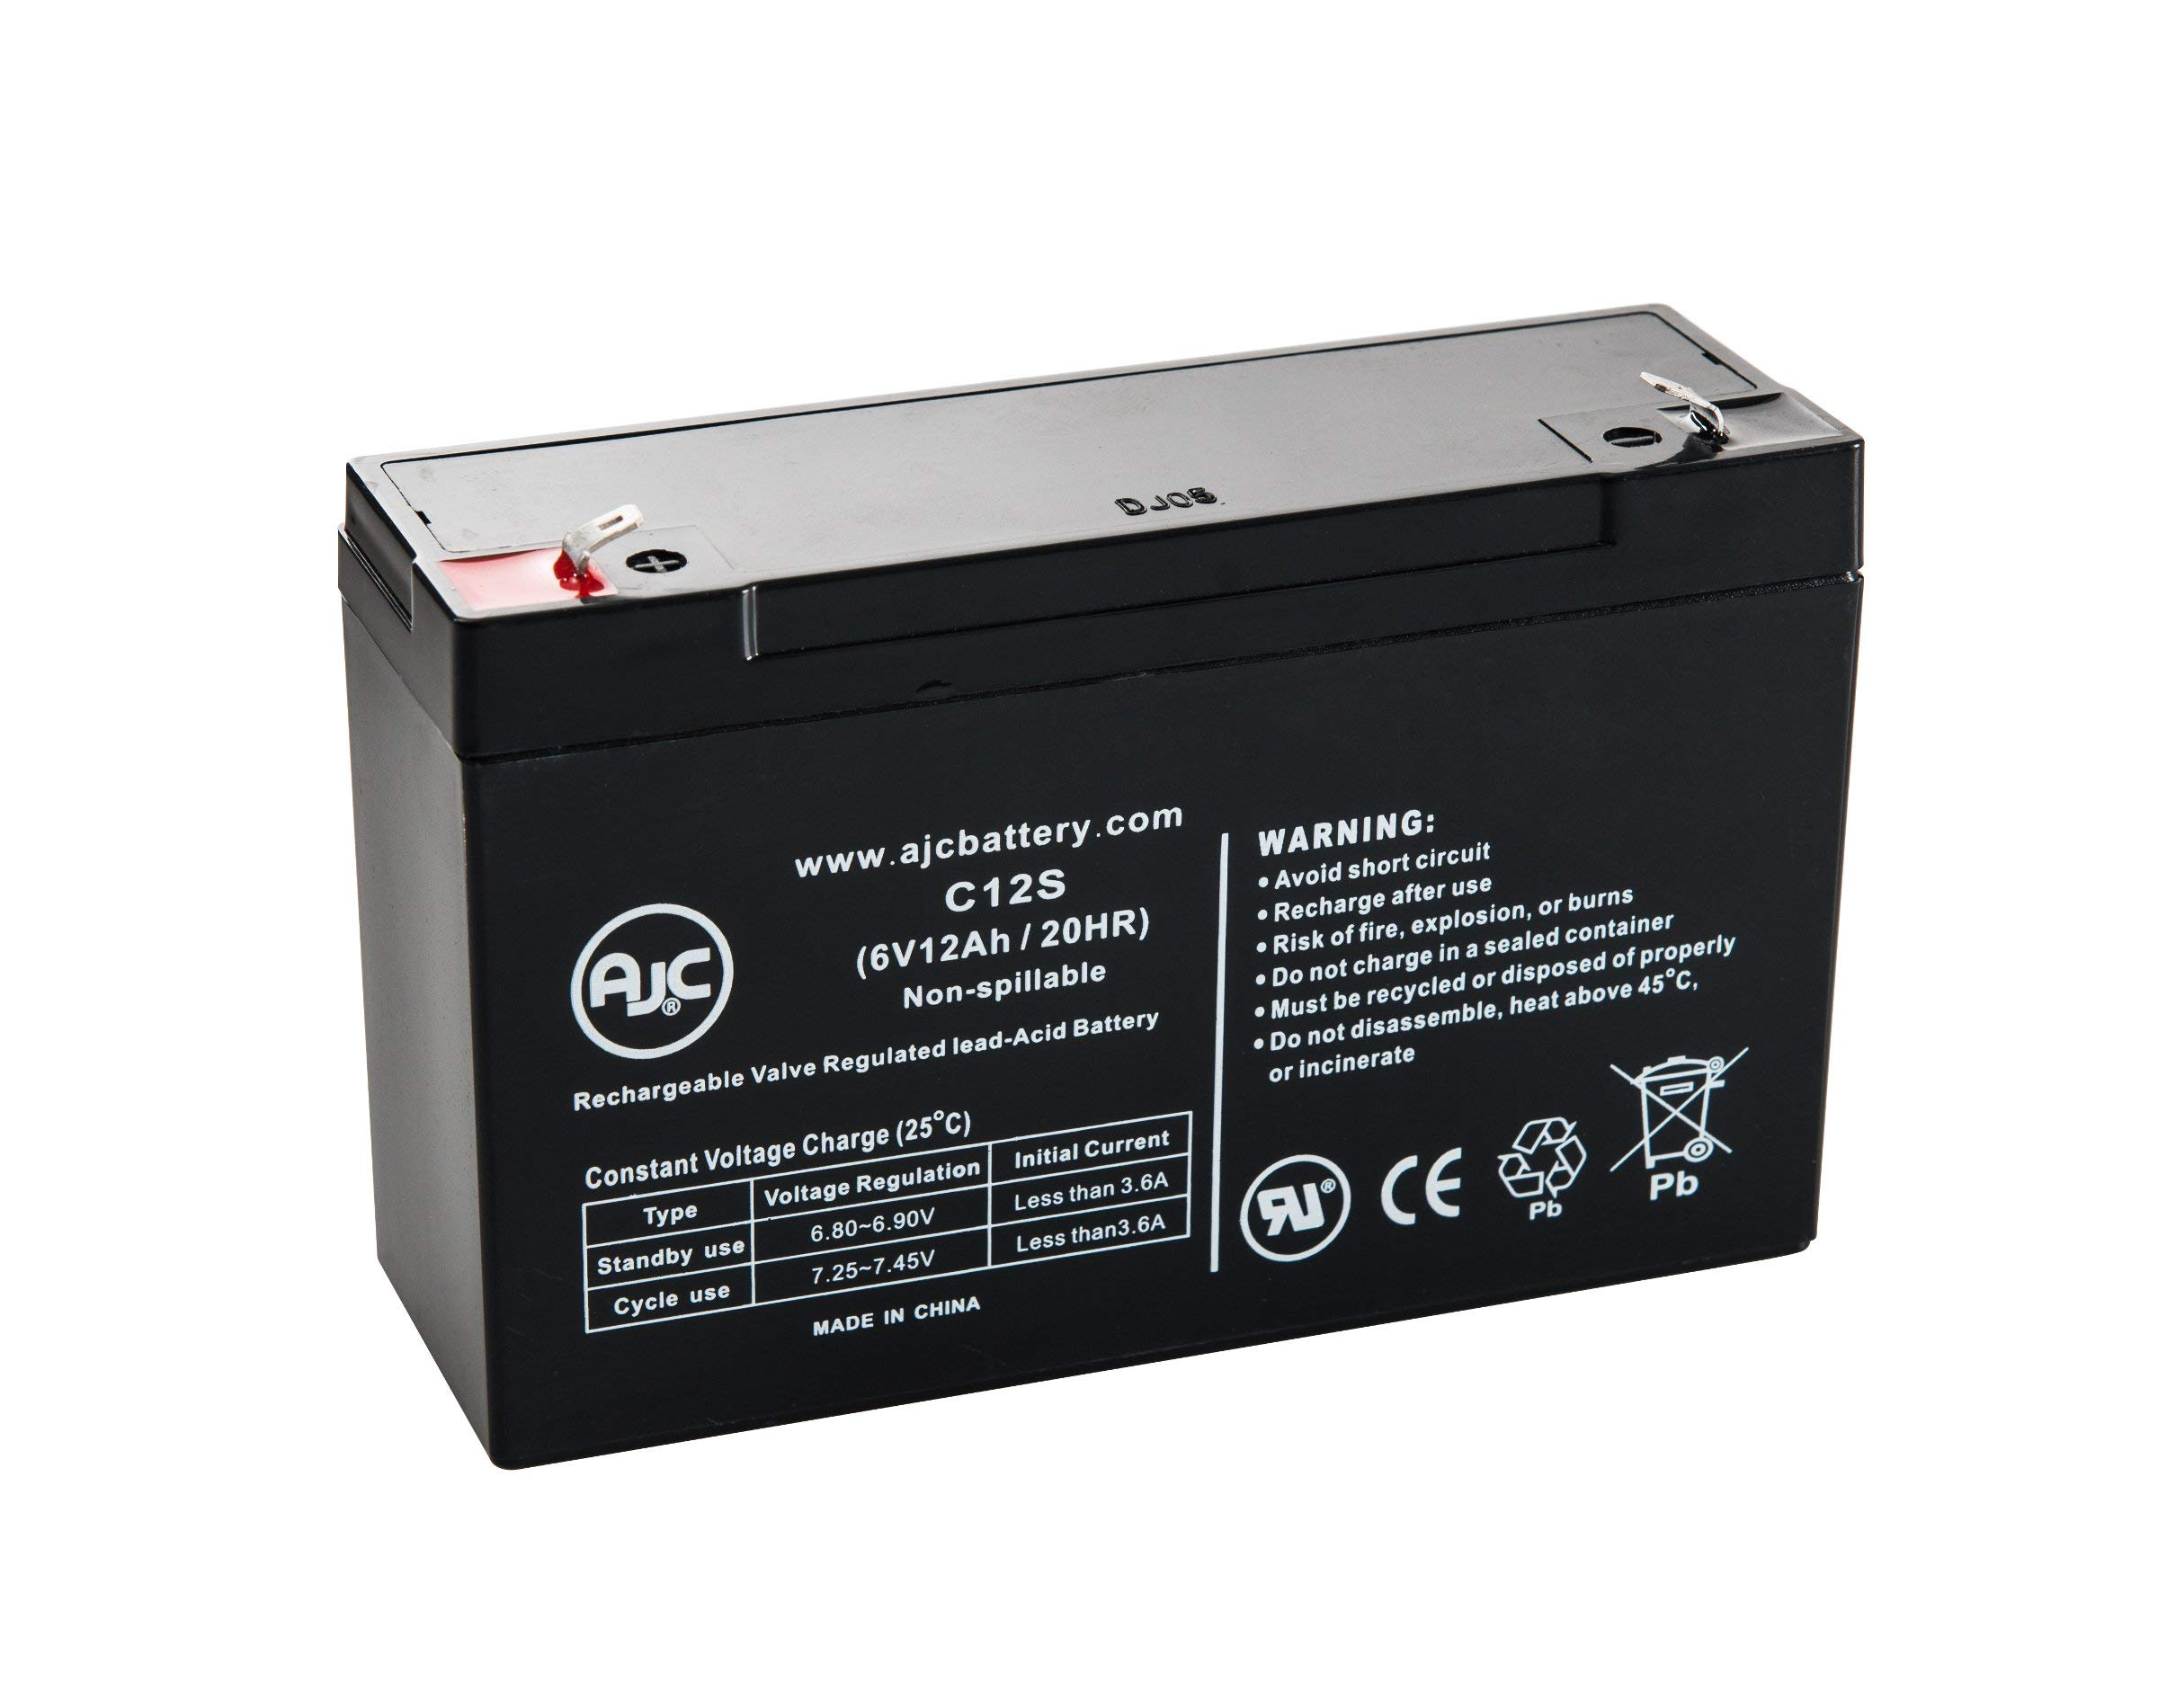 Lithonia ELB0612 6V 12Ah Emergency Light Battery - This is an AJC Brand Replacement